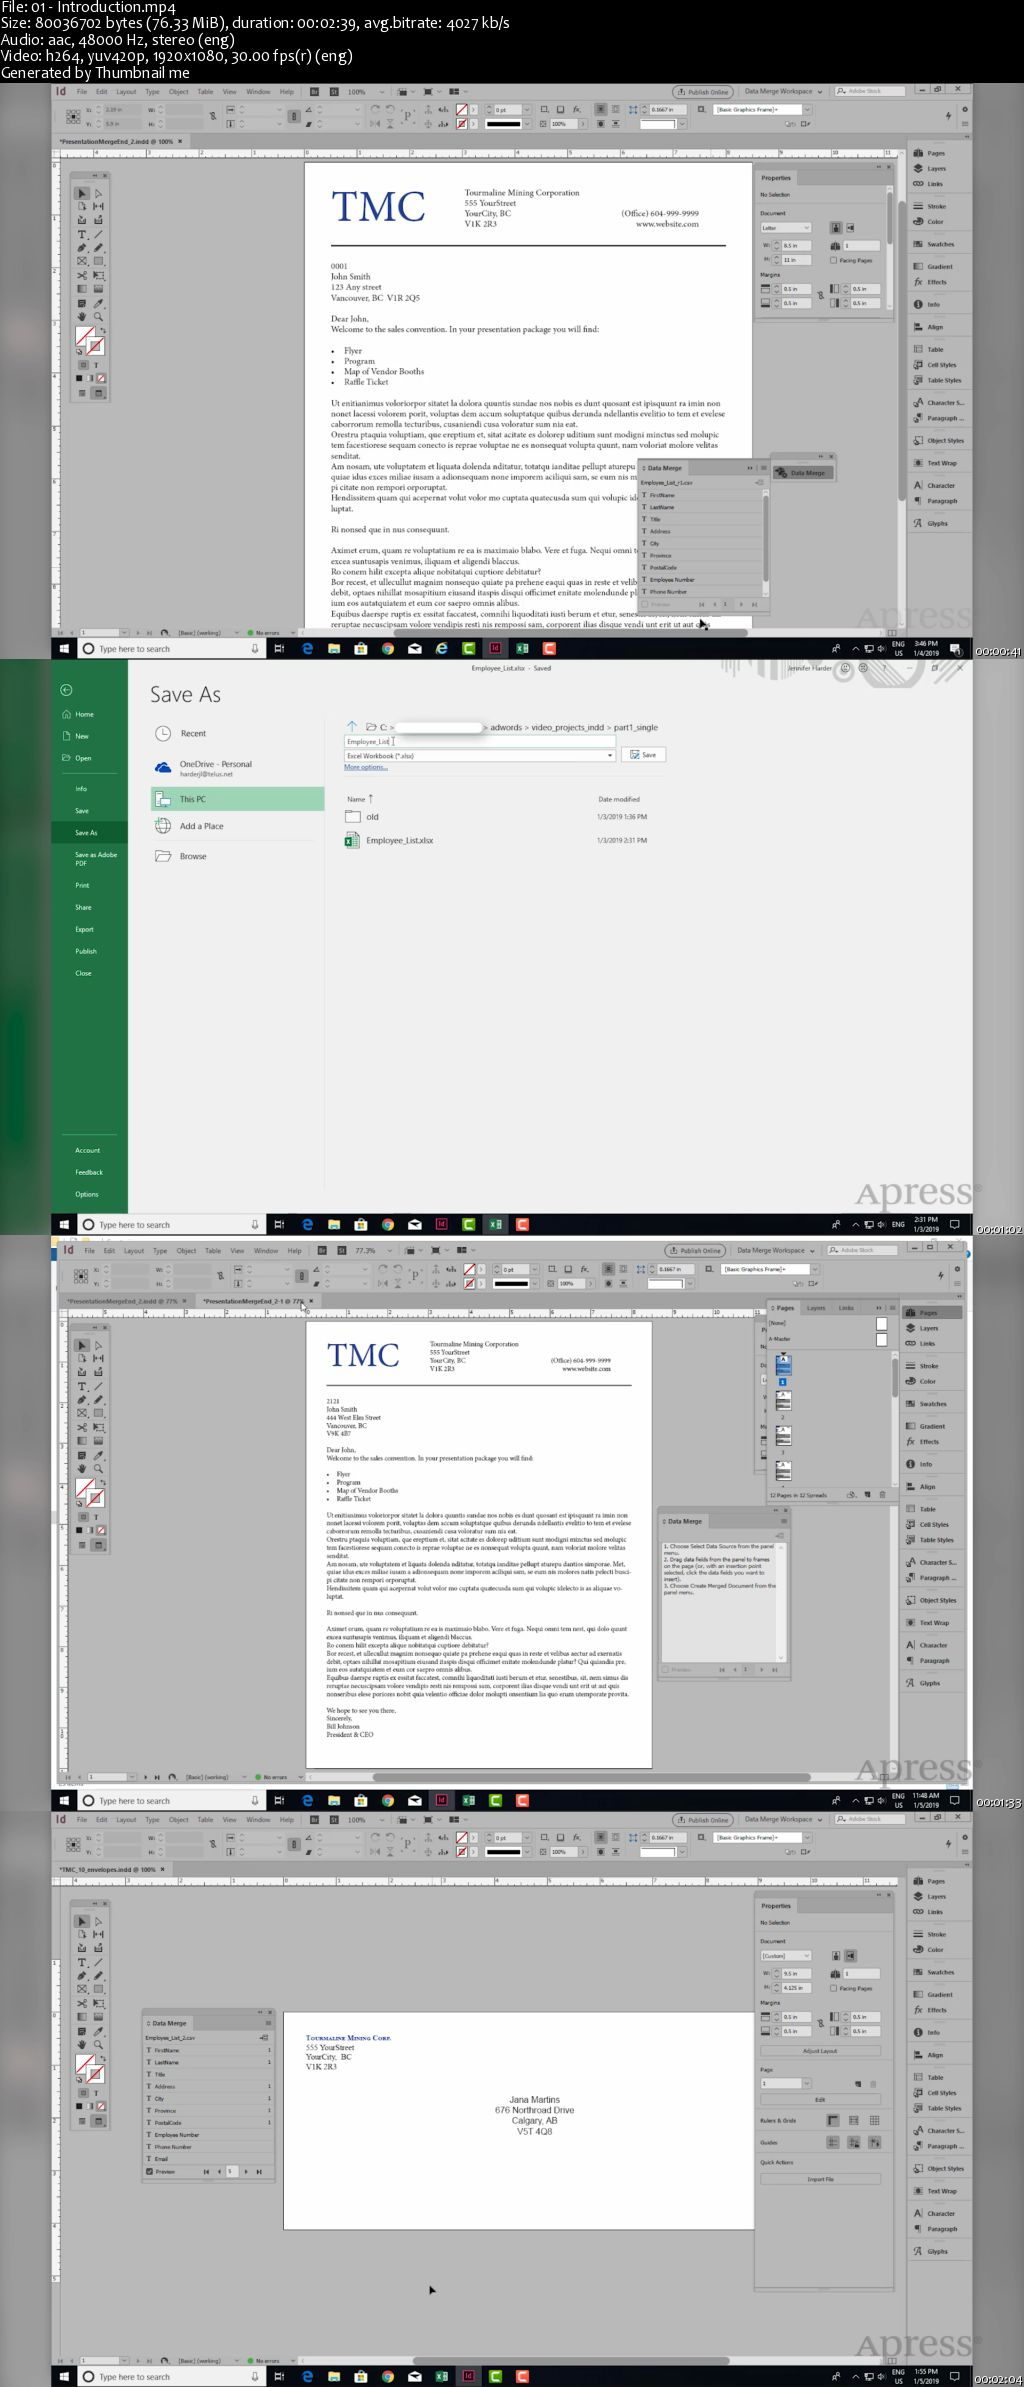 Beginning Data Merge With Adobe Indesign Cc Quickly Create Files Using An Excel Spreadsheet